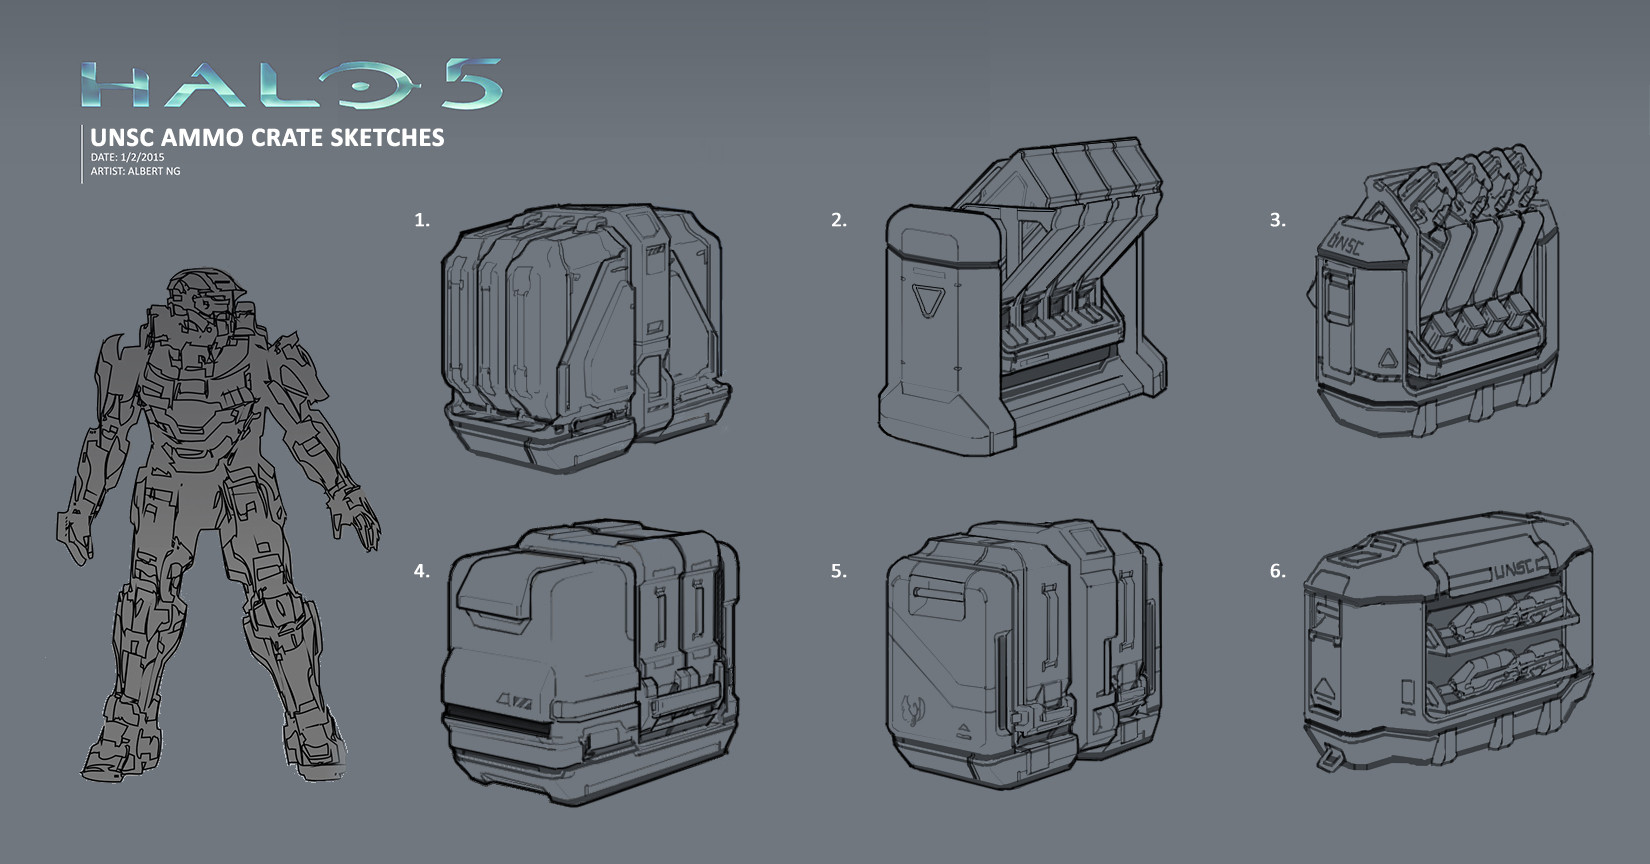 Albert ng unsc ammo crate sketches